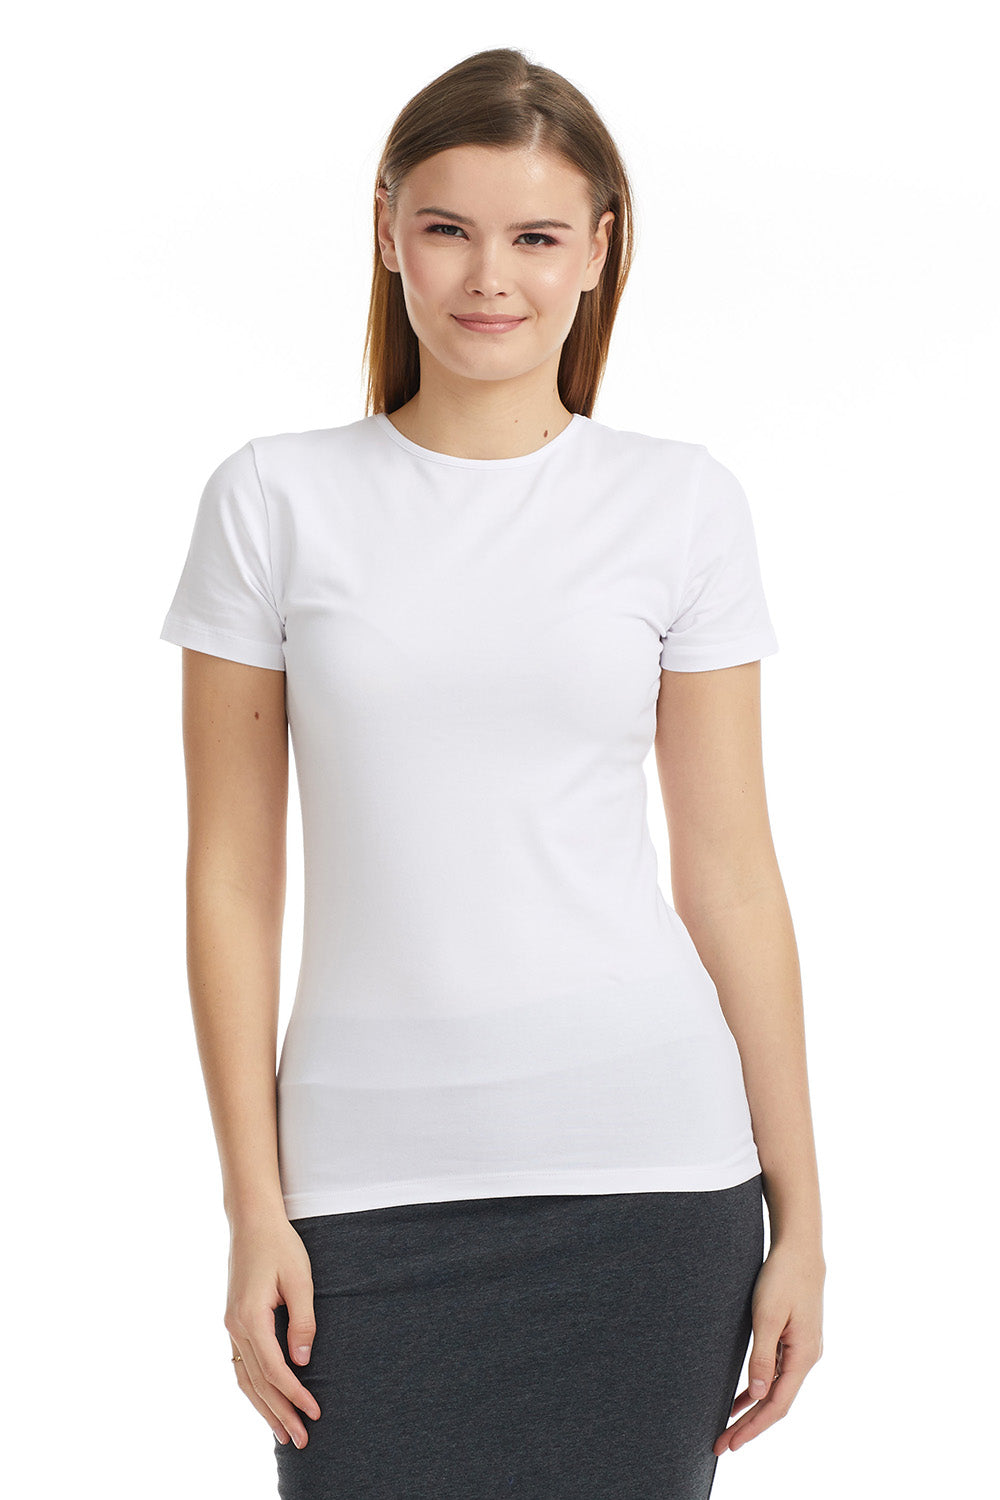 Esteez Short Sleeve Cotton Lycra T-Shirt for WOMEN – WHITE